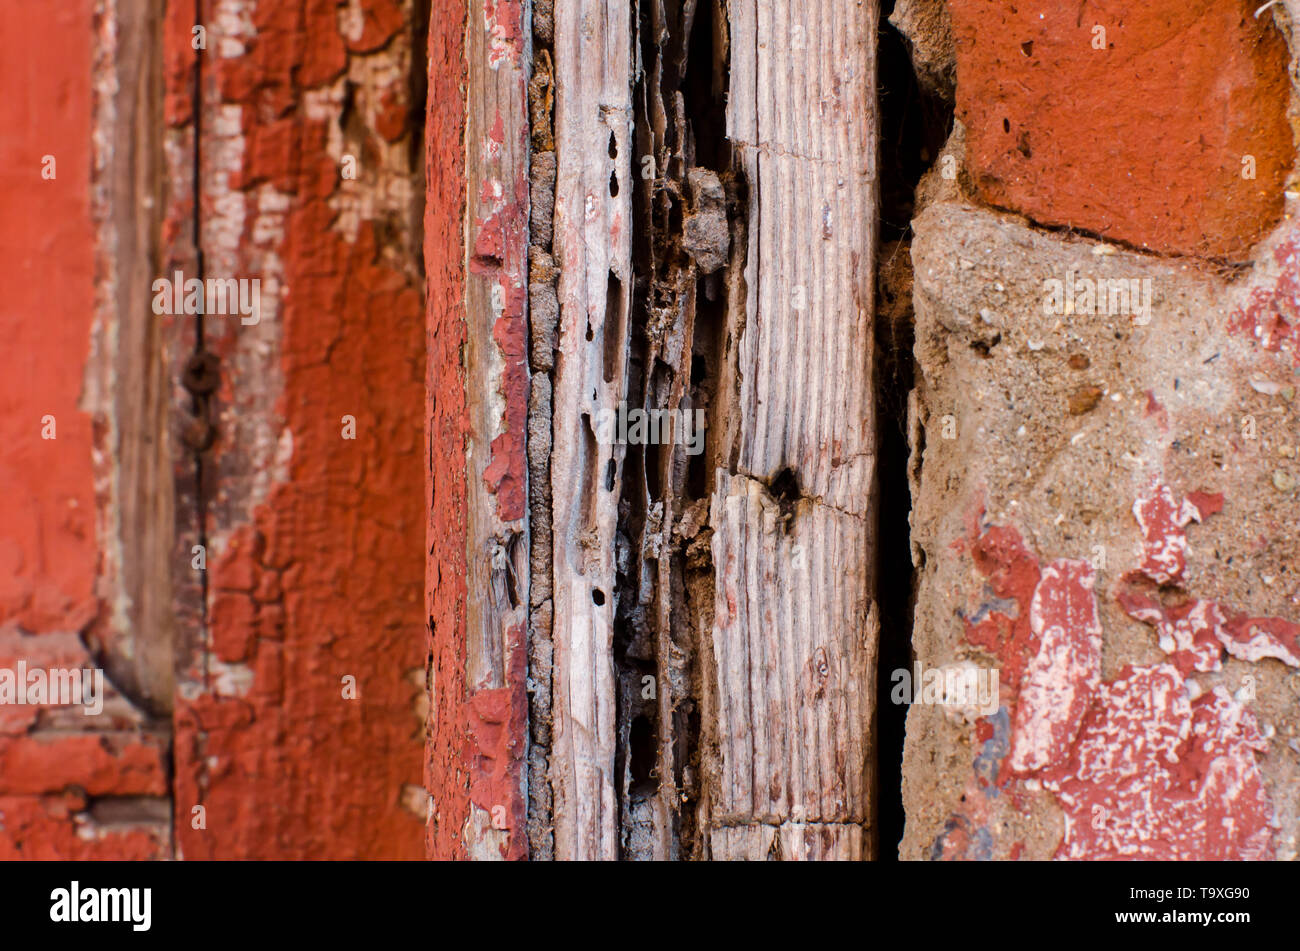 Texture of piece of wood attacked by termites - Stock Image